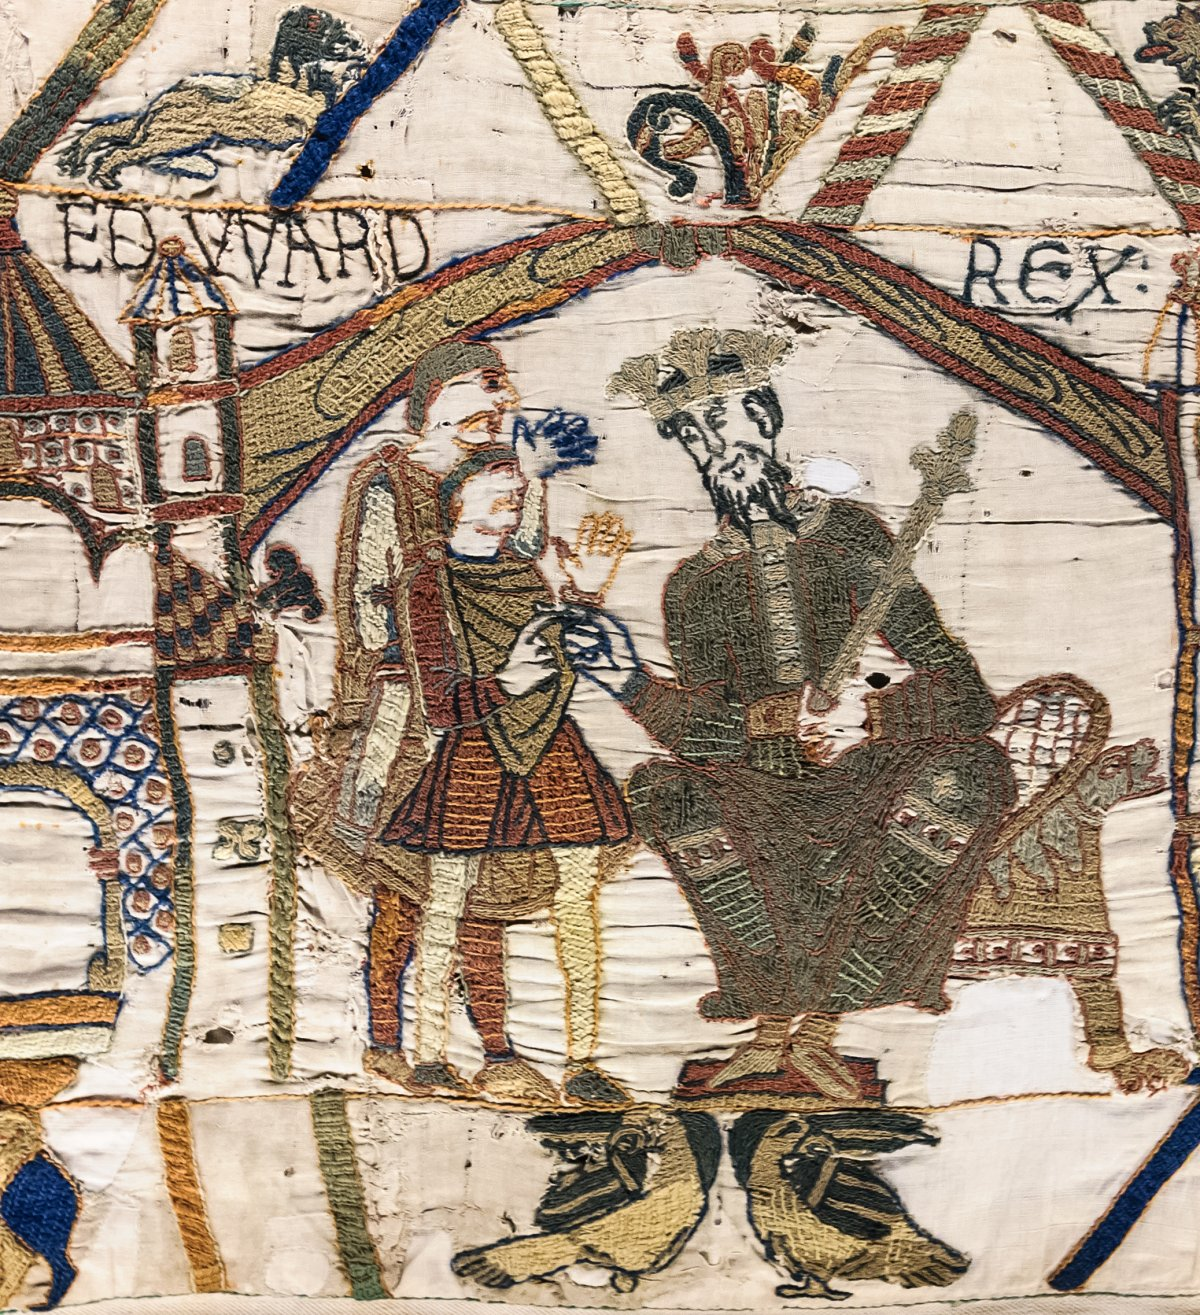 Bayeux Tapestry - Scene 1 : King Edward the Confessor and Harold Godwinson at Winchester